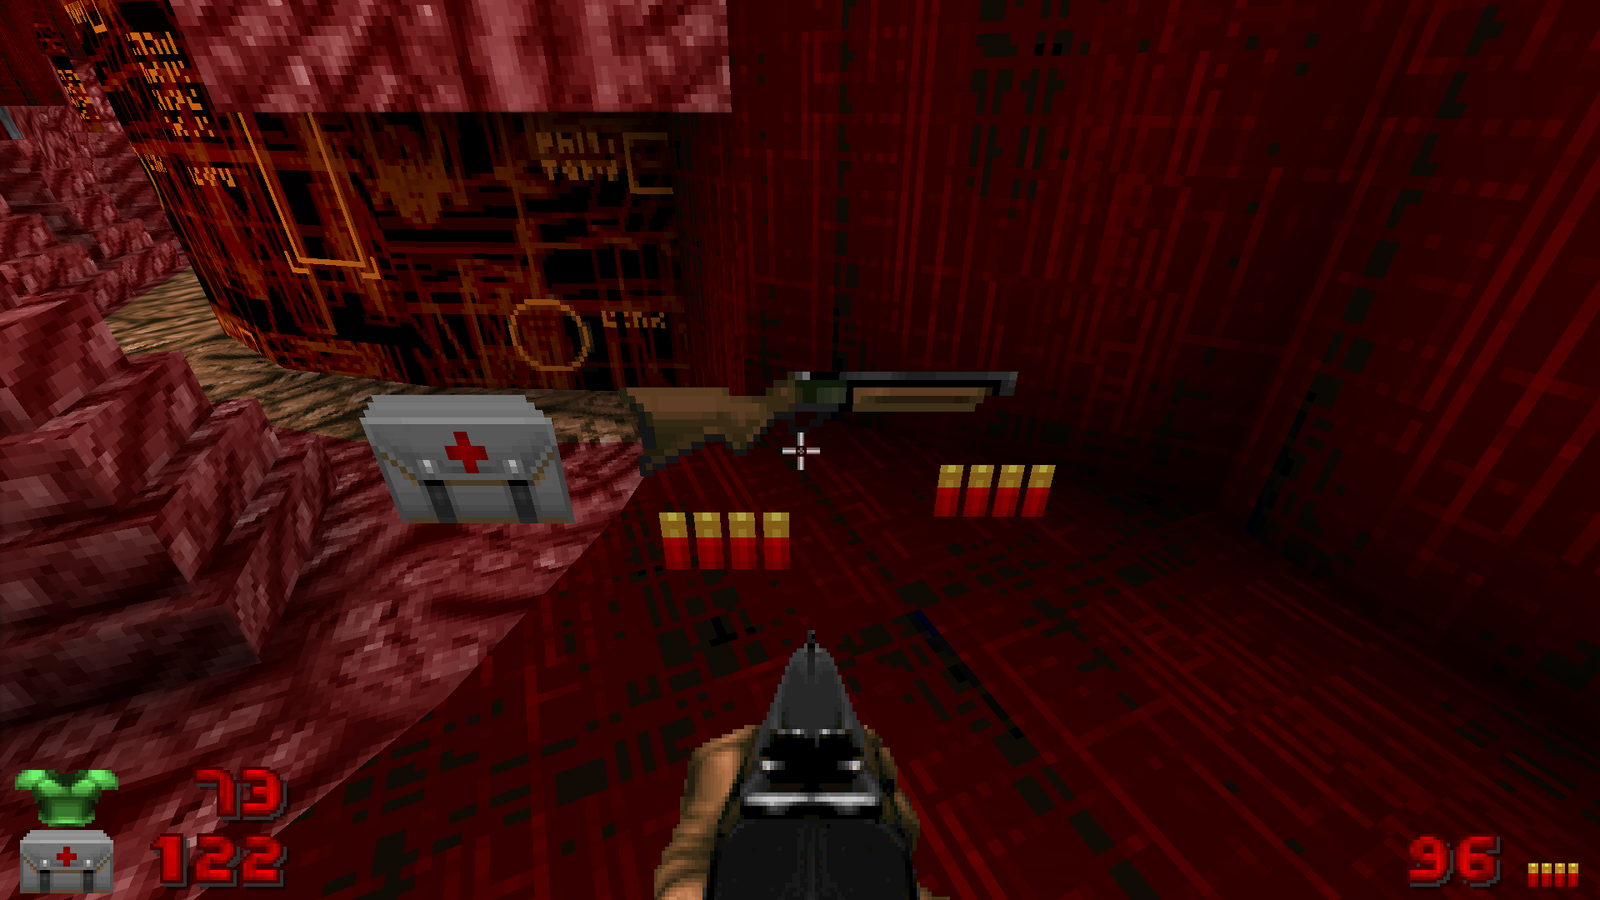 Screenshot_Doom_20180319_104507.png.5d0903dec2f8d3c7e0f94d6c7fac5e7f.png